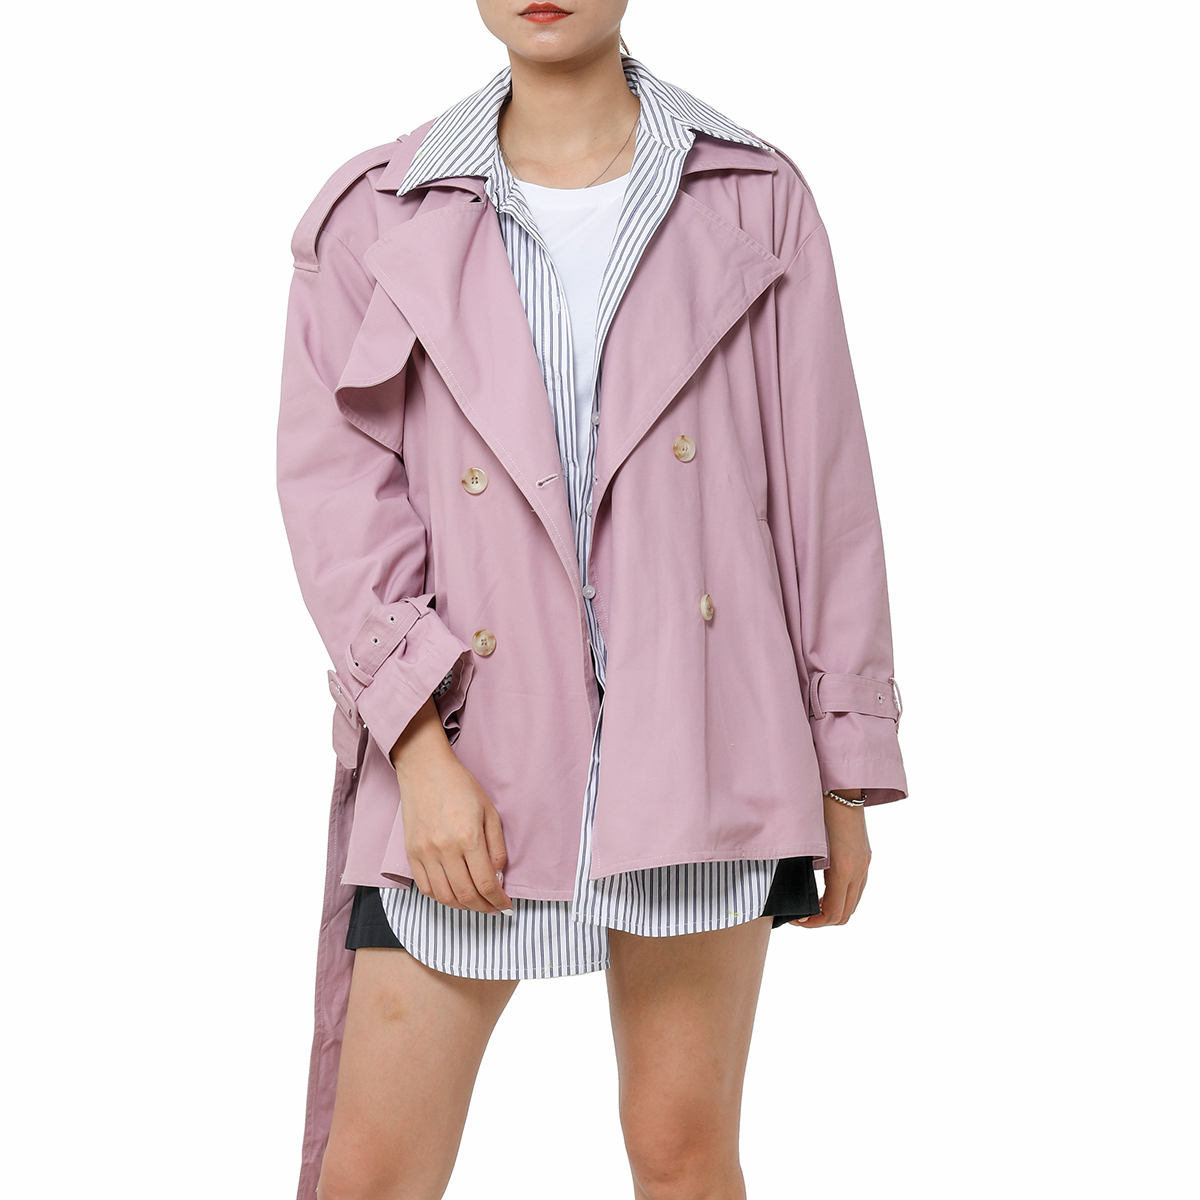 Jastie Fake Two Pieces   Trench   Coat UK Fashion 2019 Autumn Winter Coats Lapel Belt Casual Women Windbreaker Outerwear Top   Trench